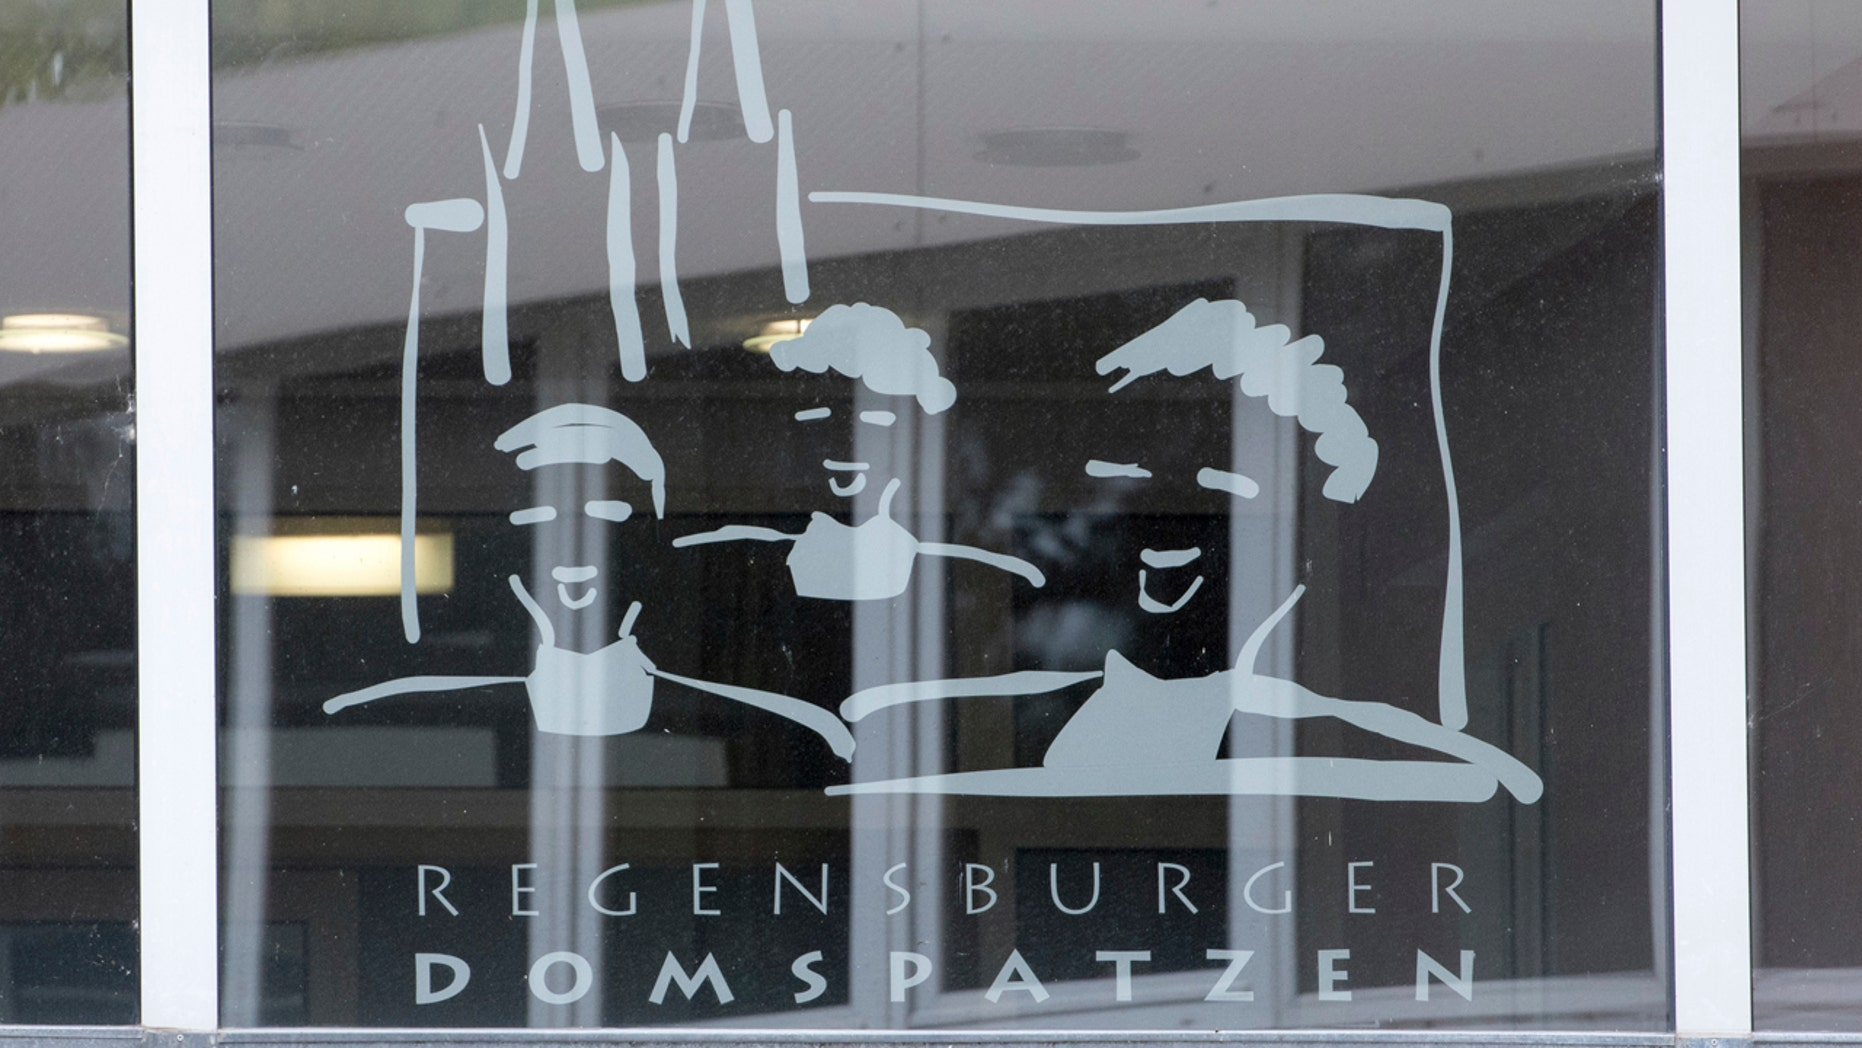 This Oct. 12, 2016 file photo shows the logo of the Regensburger Domspatzen choir at a window of the high school in Regensburg.